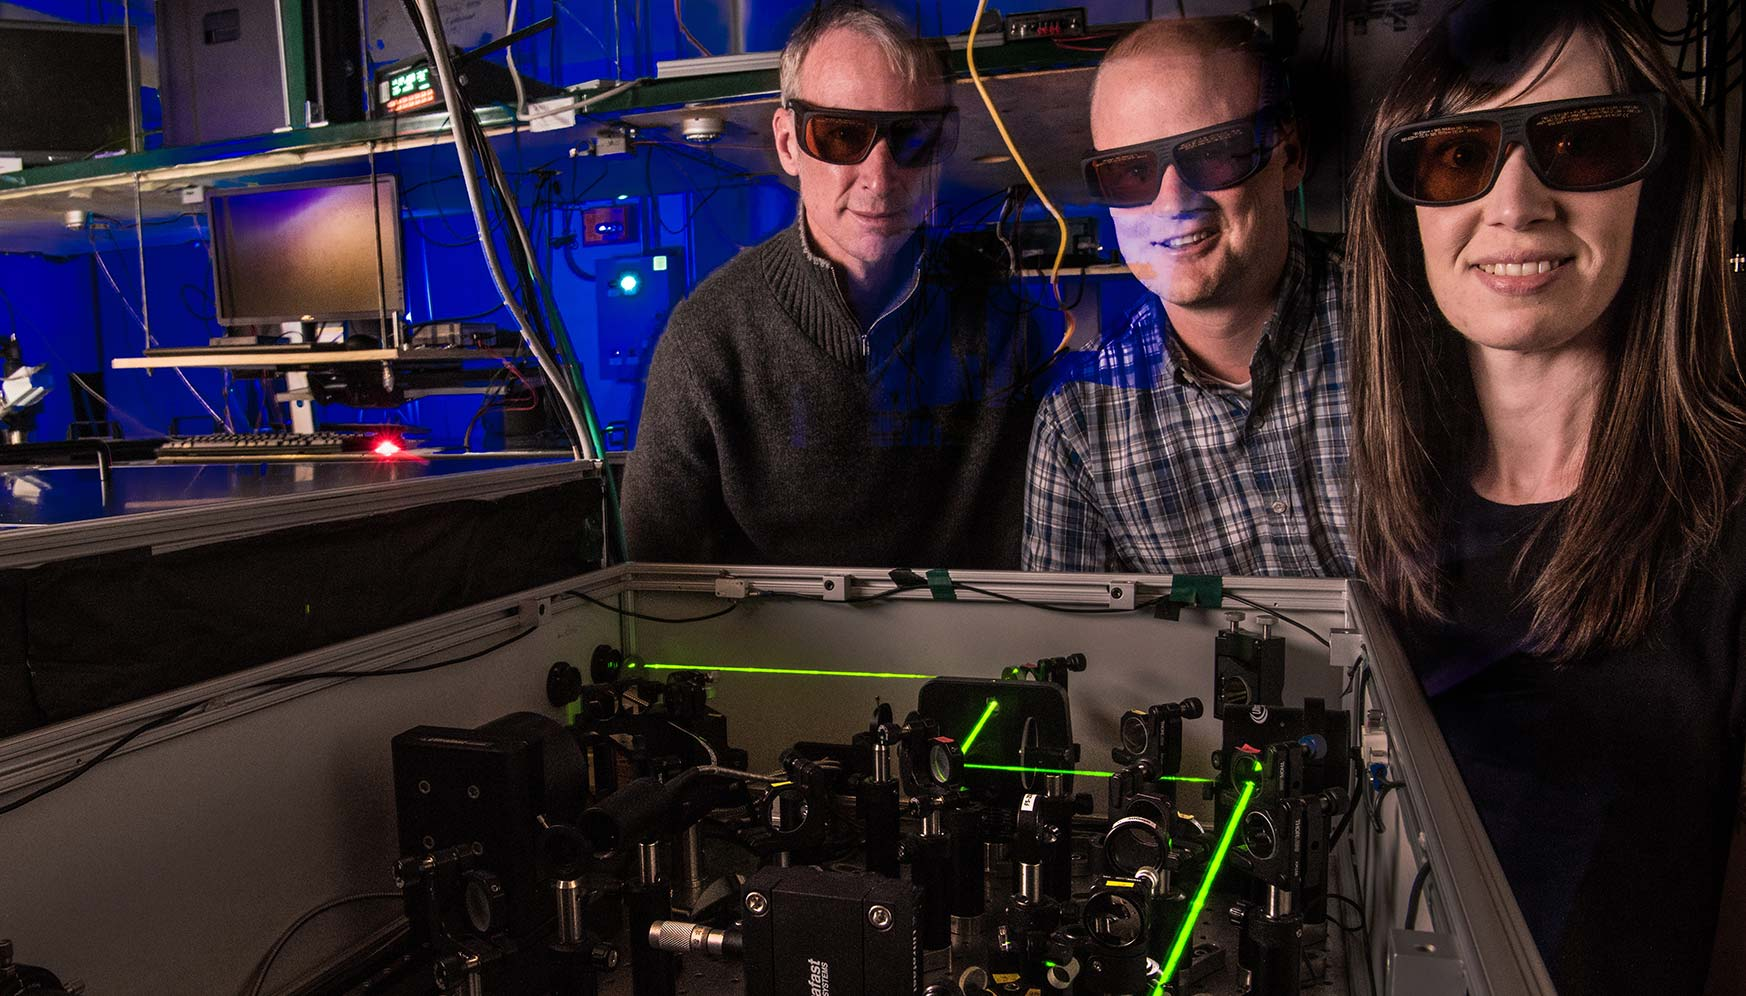 Two men and one woman wearing dark glasses stand next to a laser.